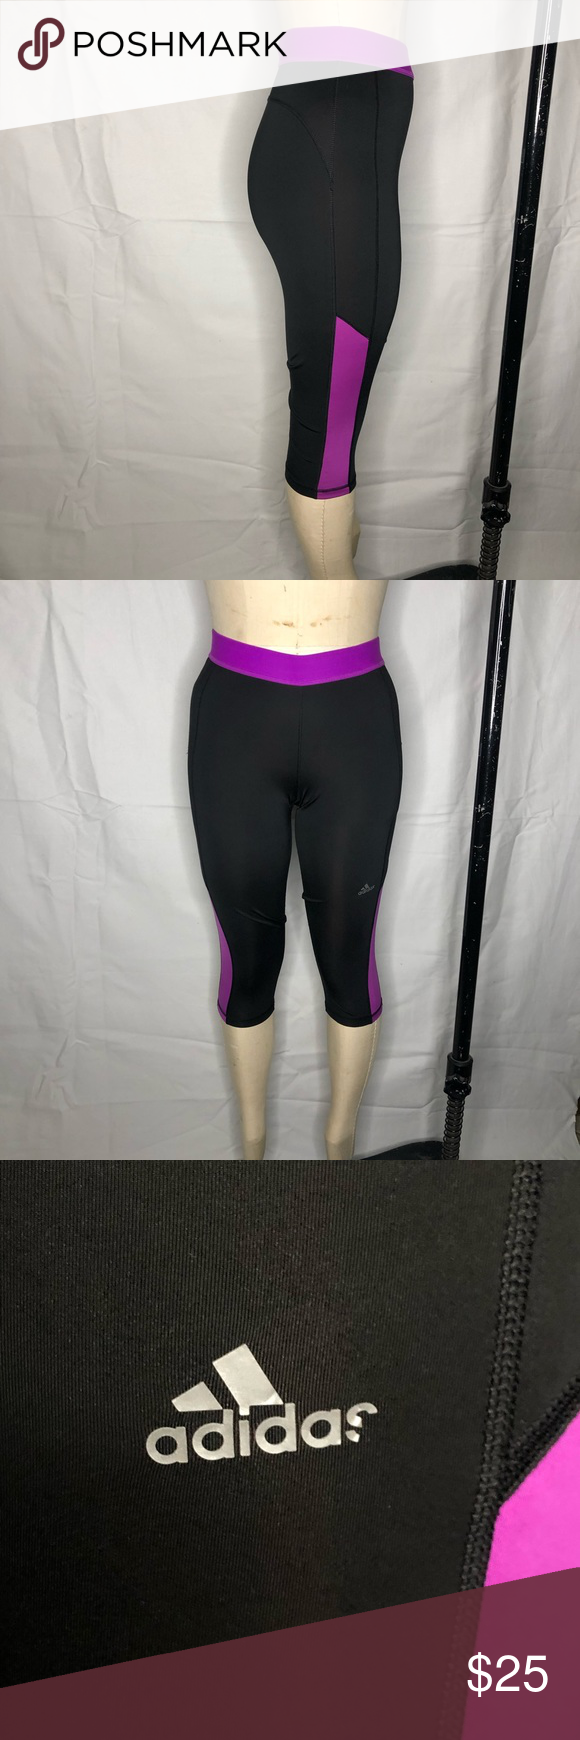 adidas leggings very